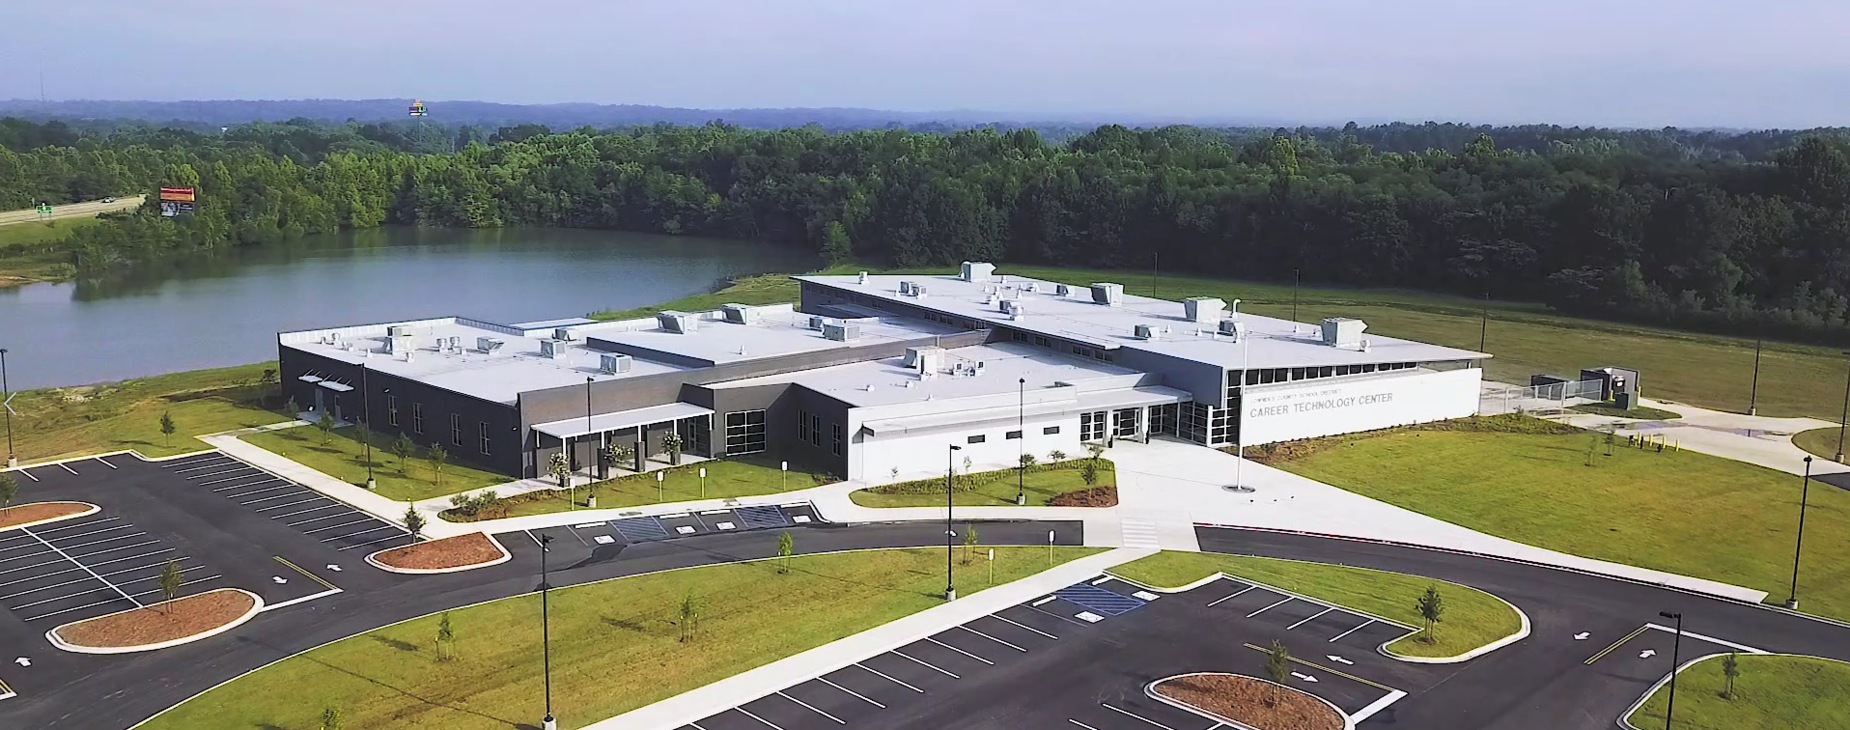 Lowndes County Career Tech Center Aerial